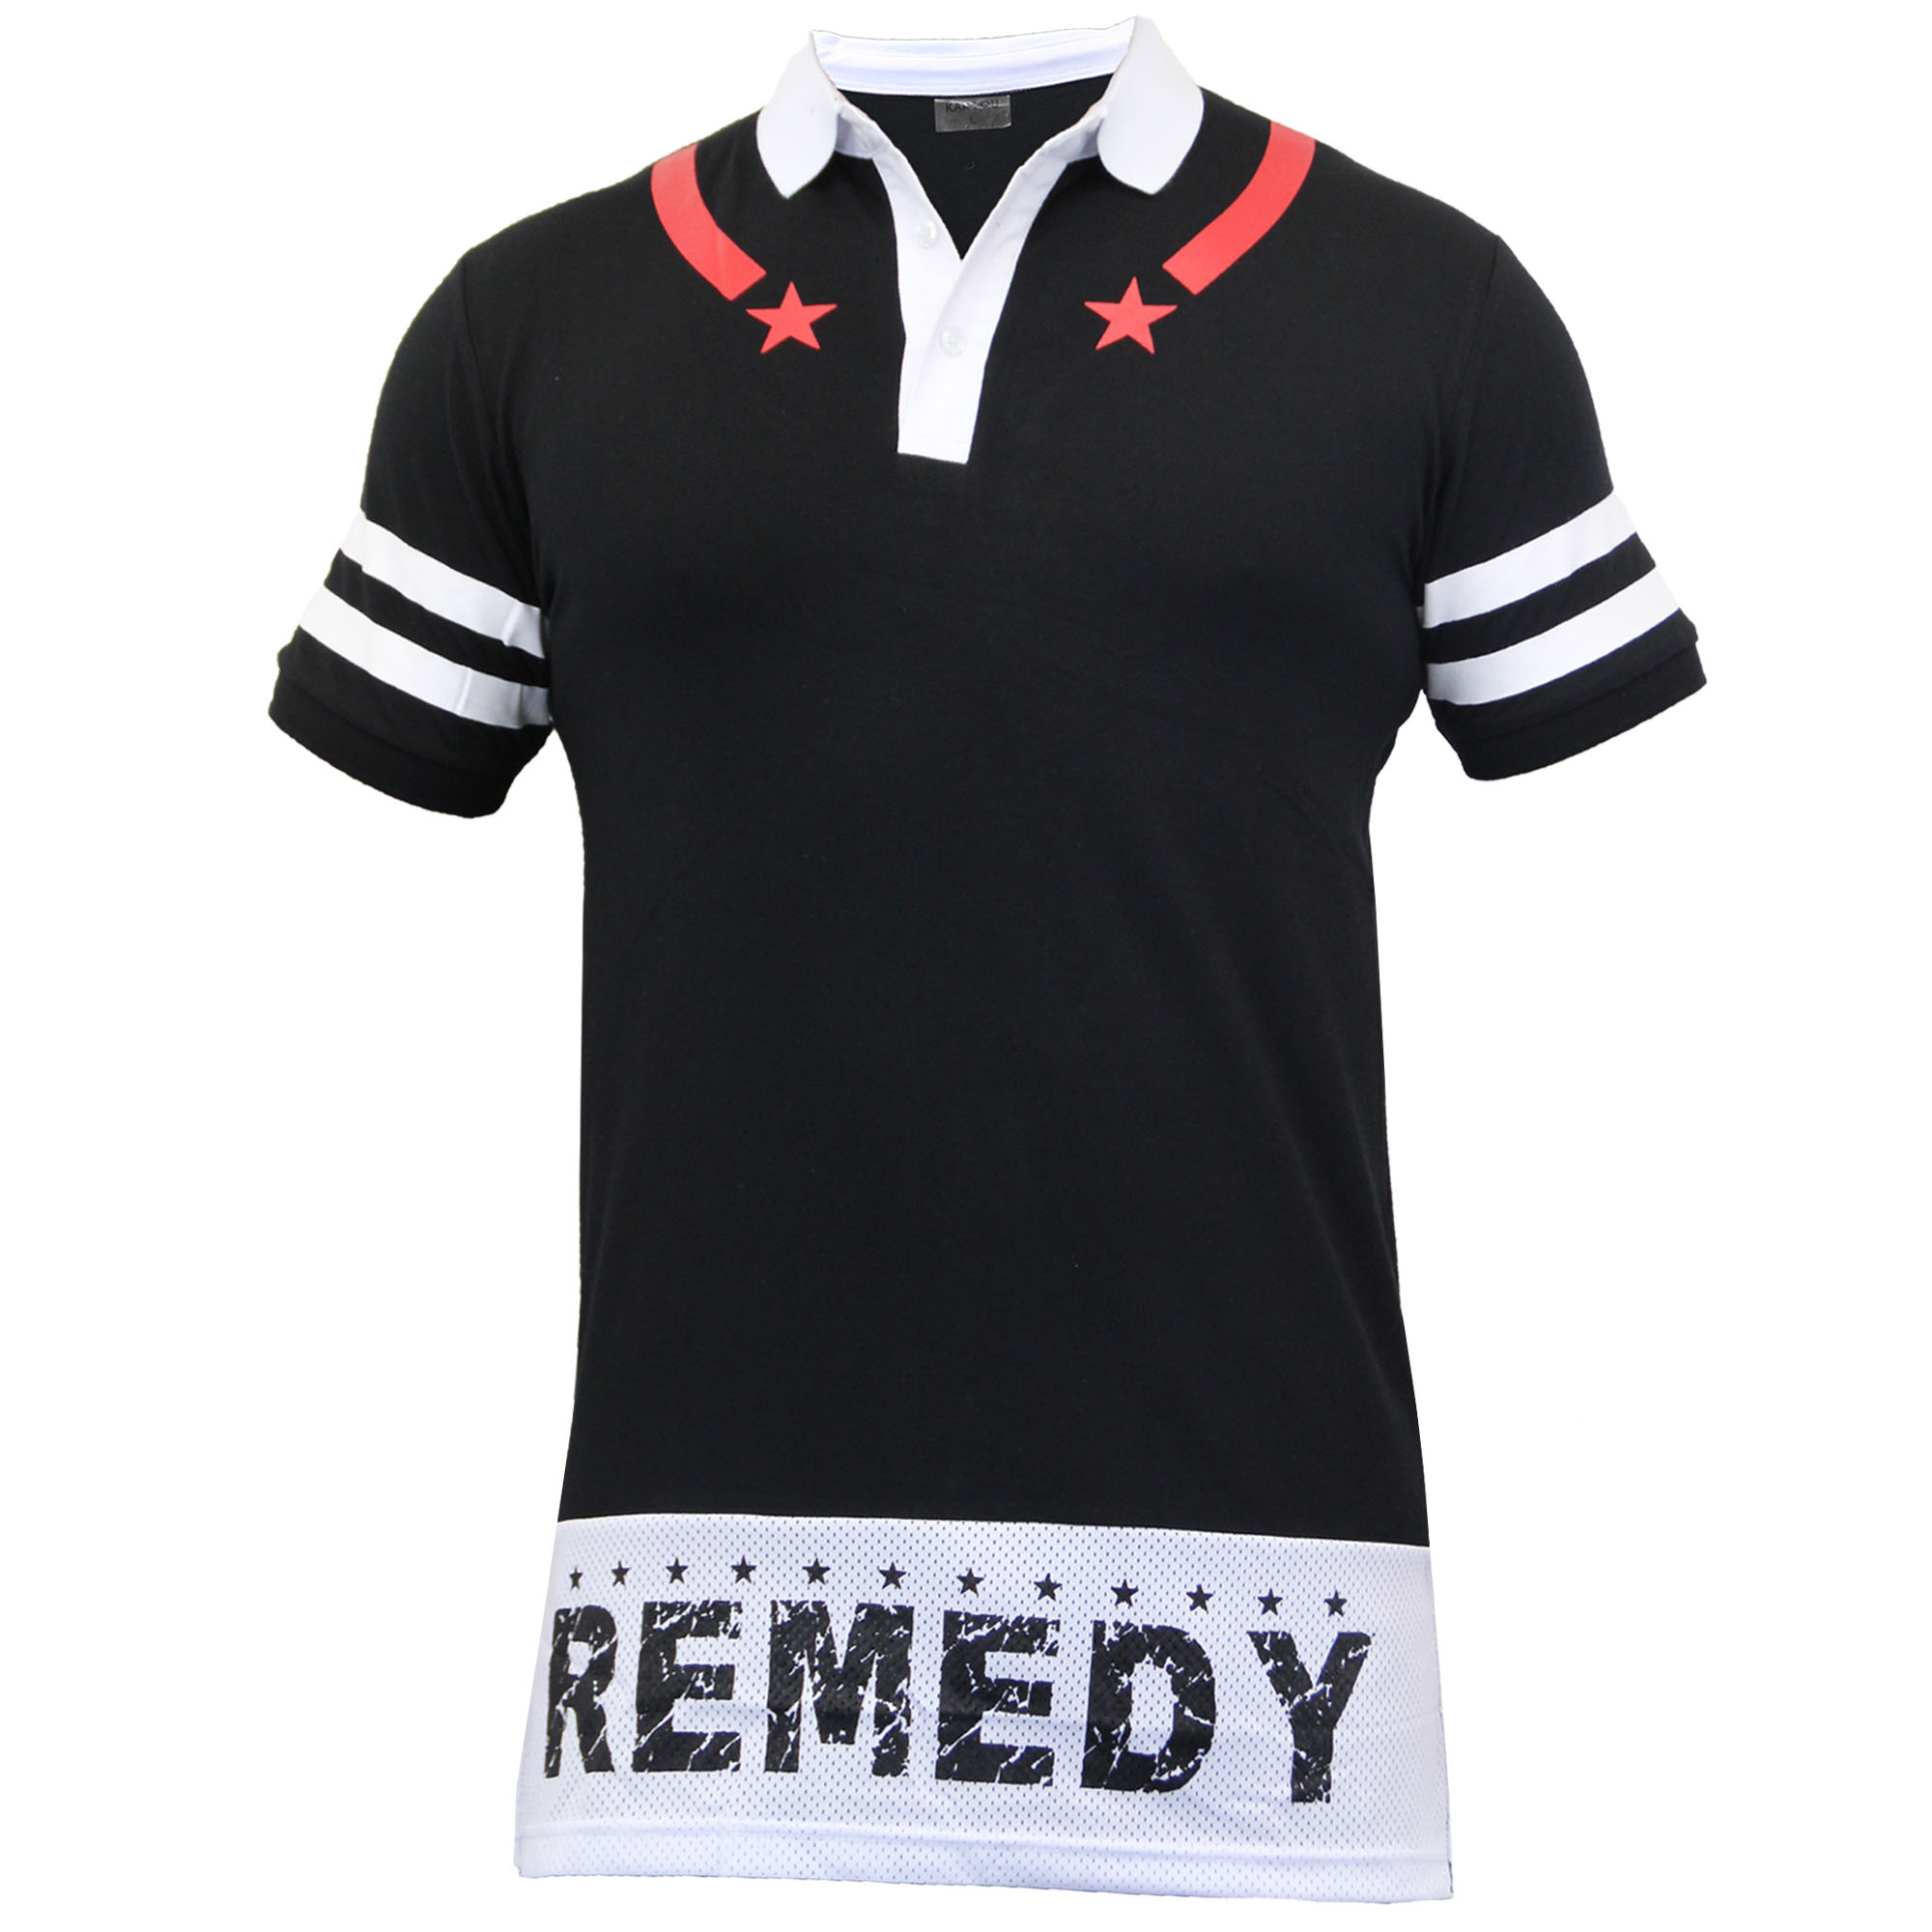 Mens polo t shirt long line short sleeved jersey stars for Mens shirt with stars